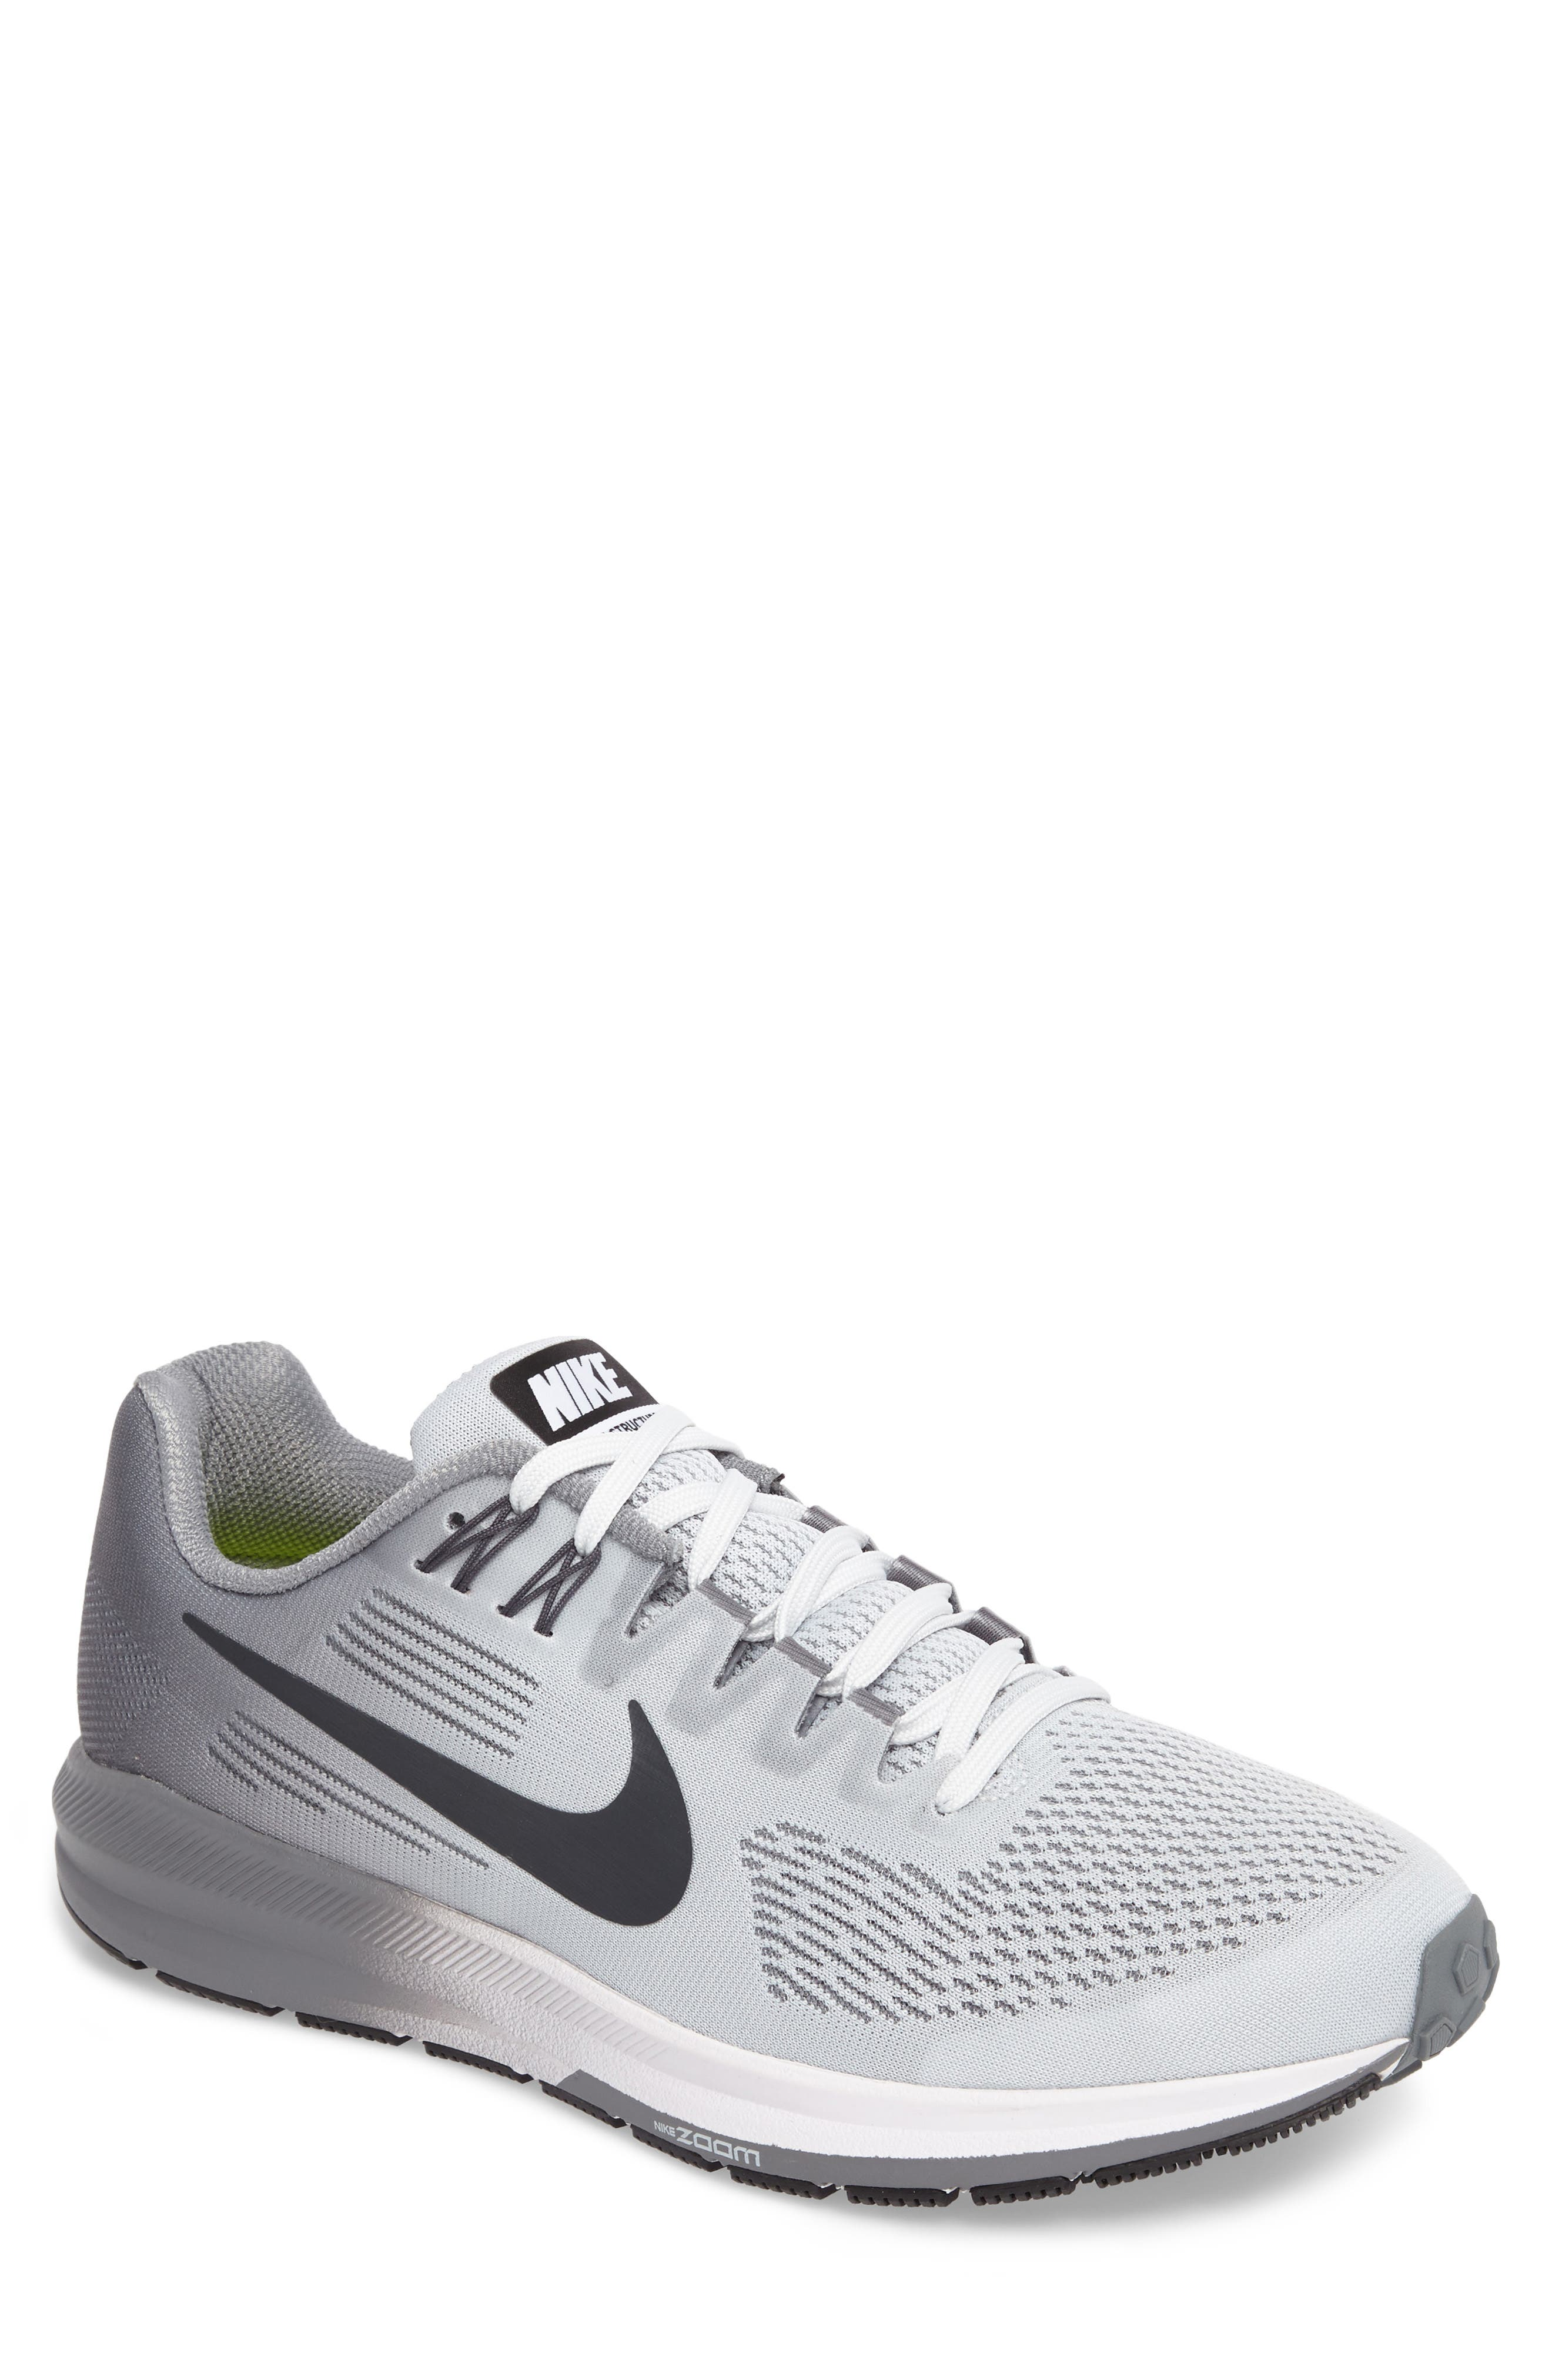 Air Zoom Structure 21 Running Shoe,                             Main thumbnail 1, color,                             Platinum/Anthracite/Cool Grey